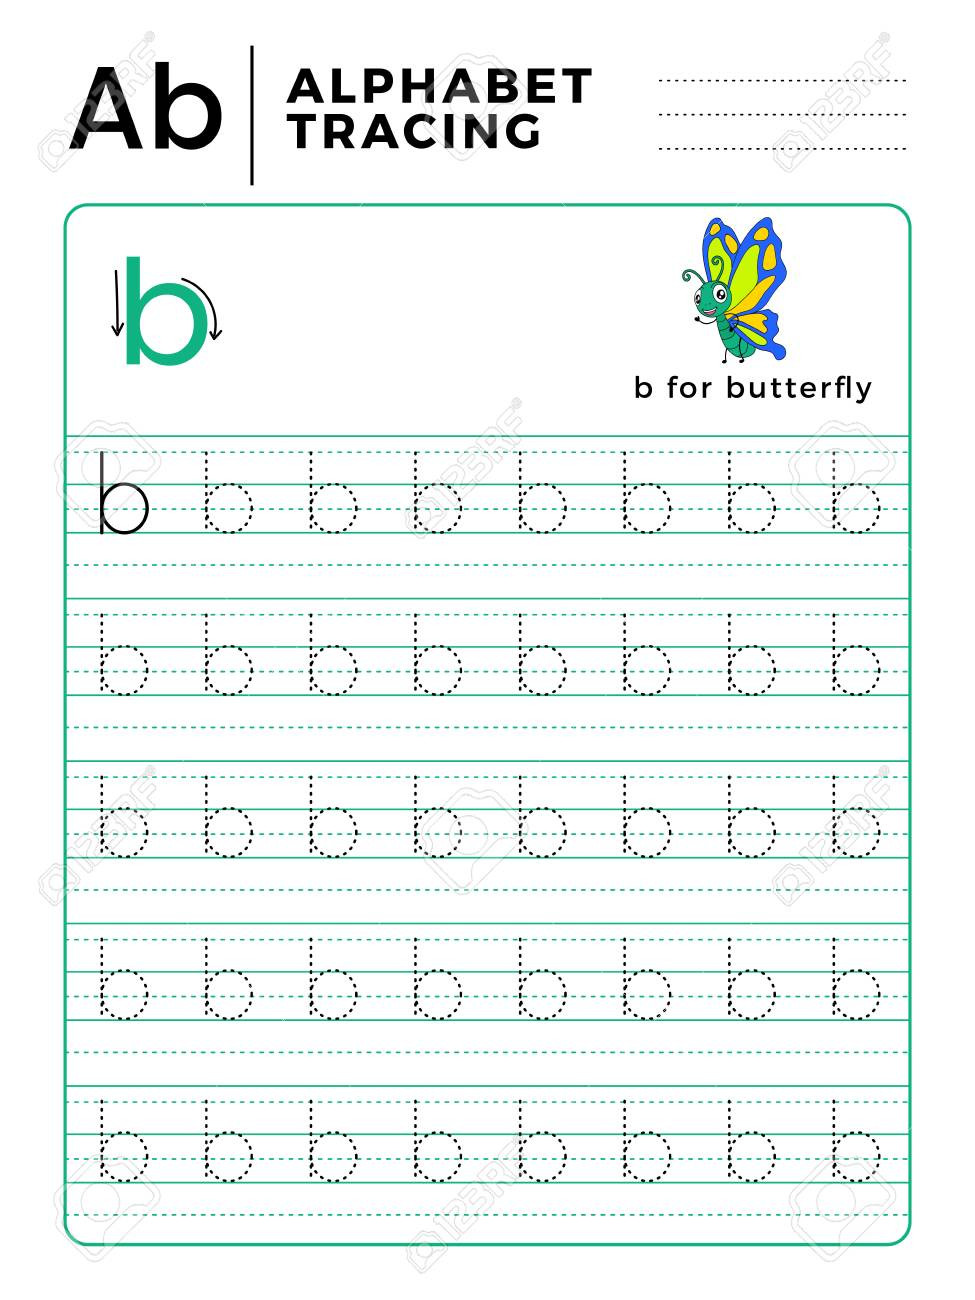 Preschool Worksheets Letter B Letter B Alphabet Tracing Book with Example and Funny butterfly